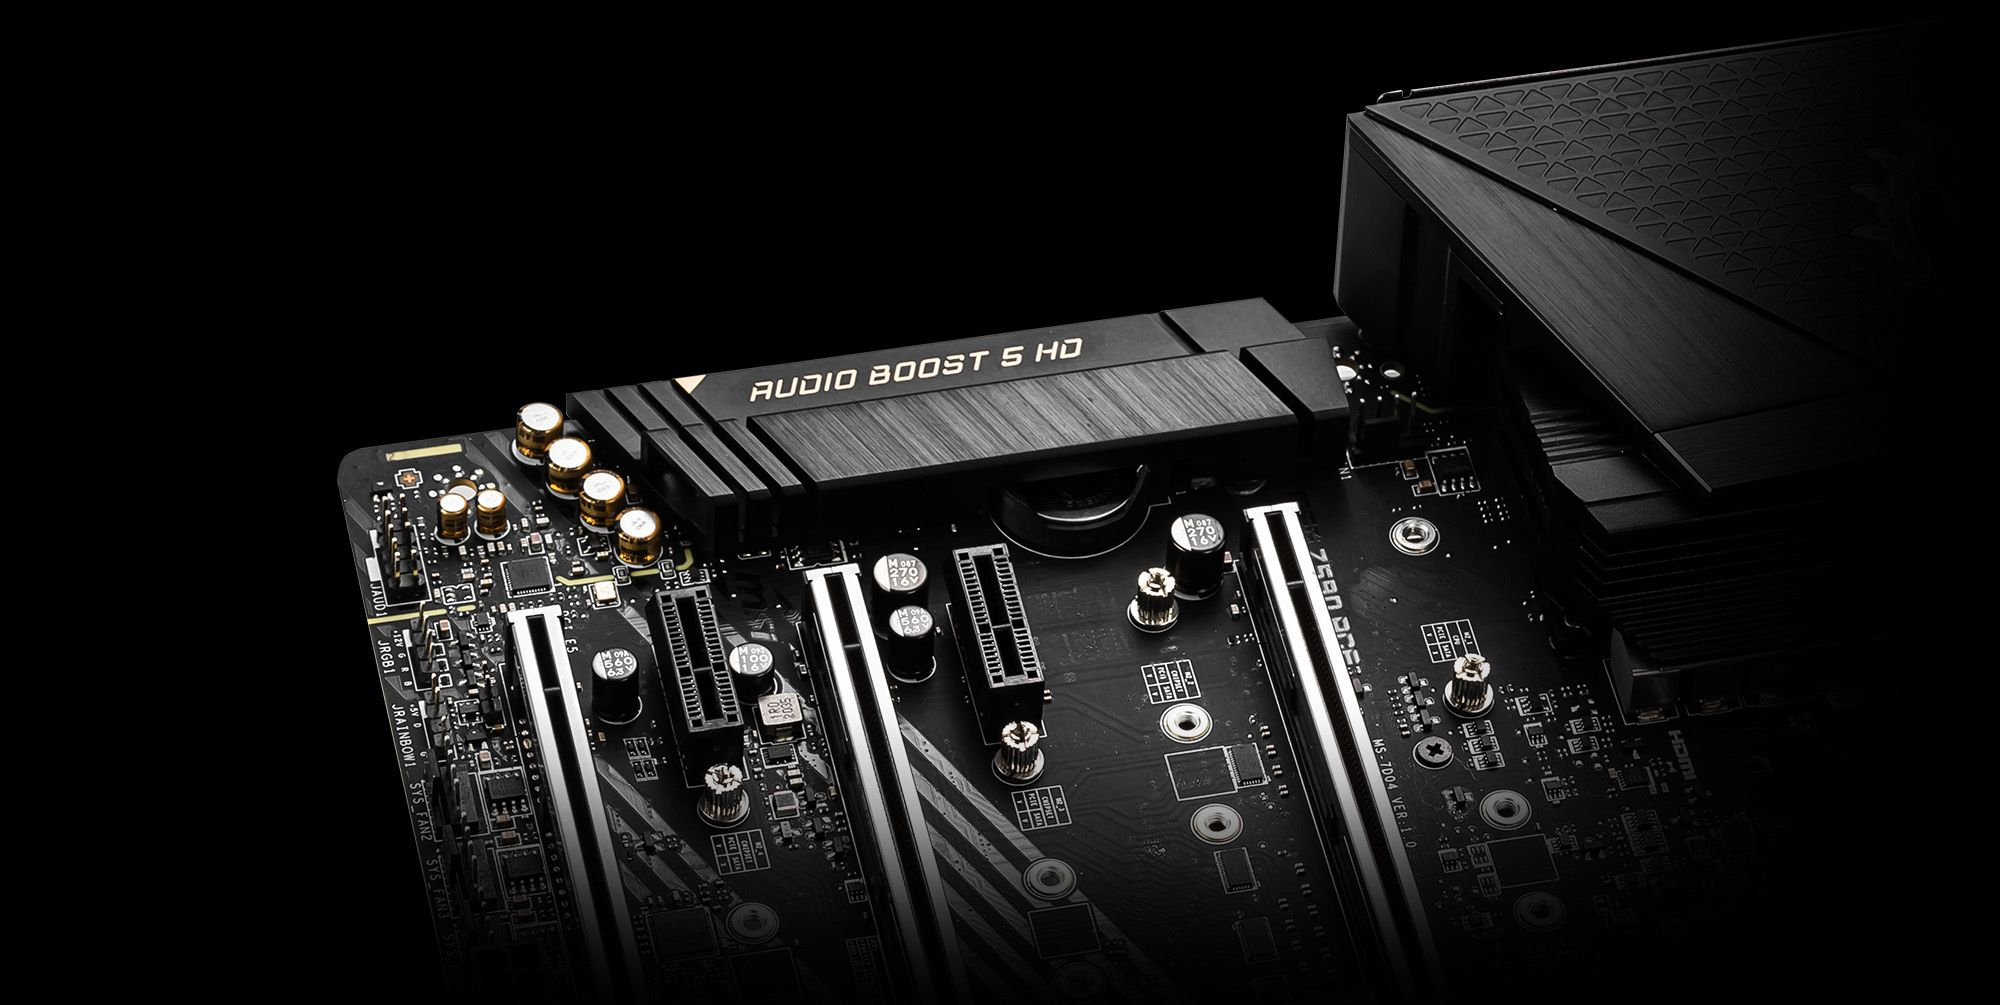 MSI Z590 500 Series Motherboard Features Sound Force